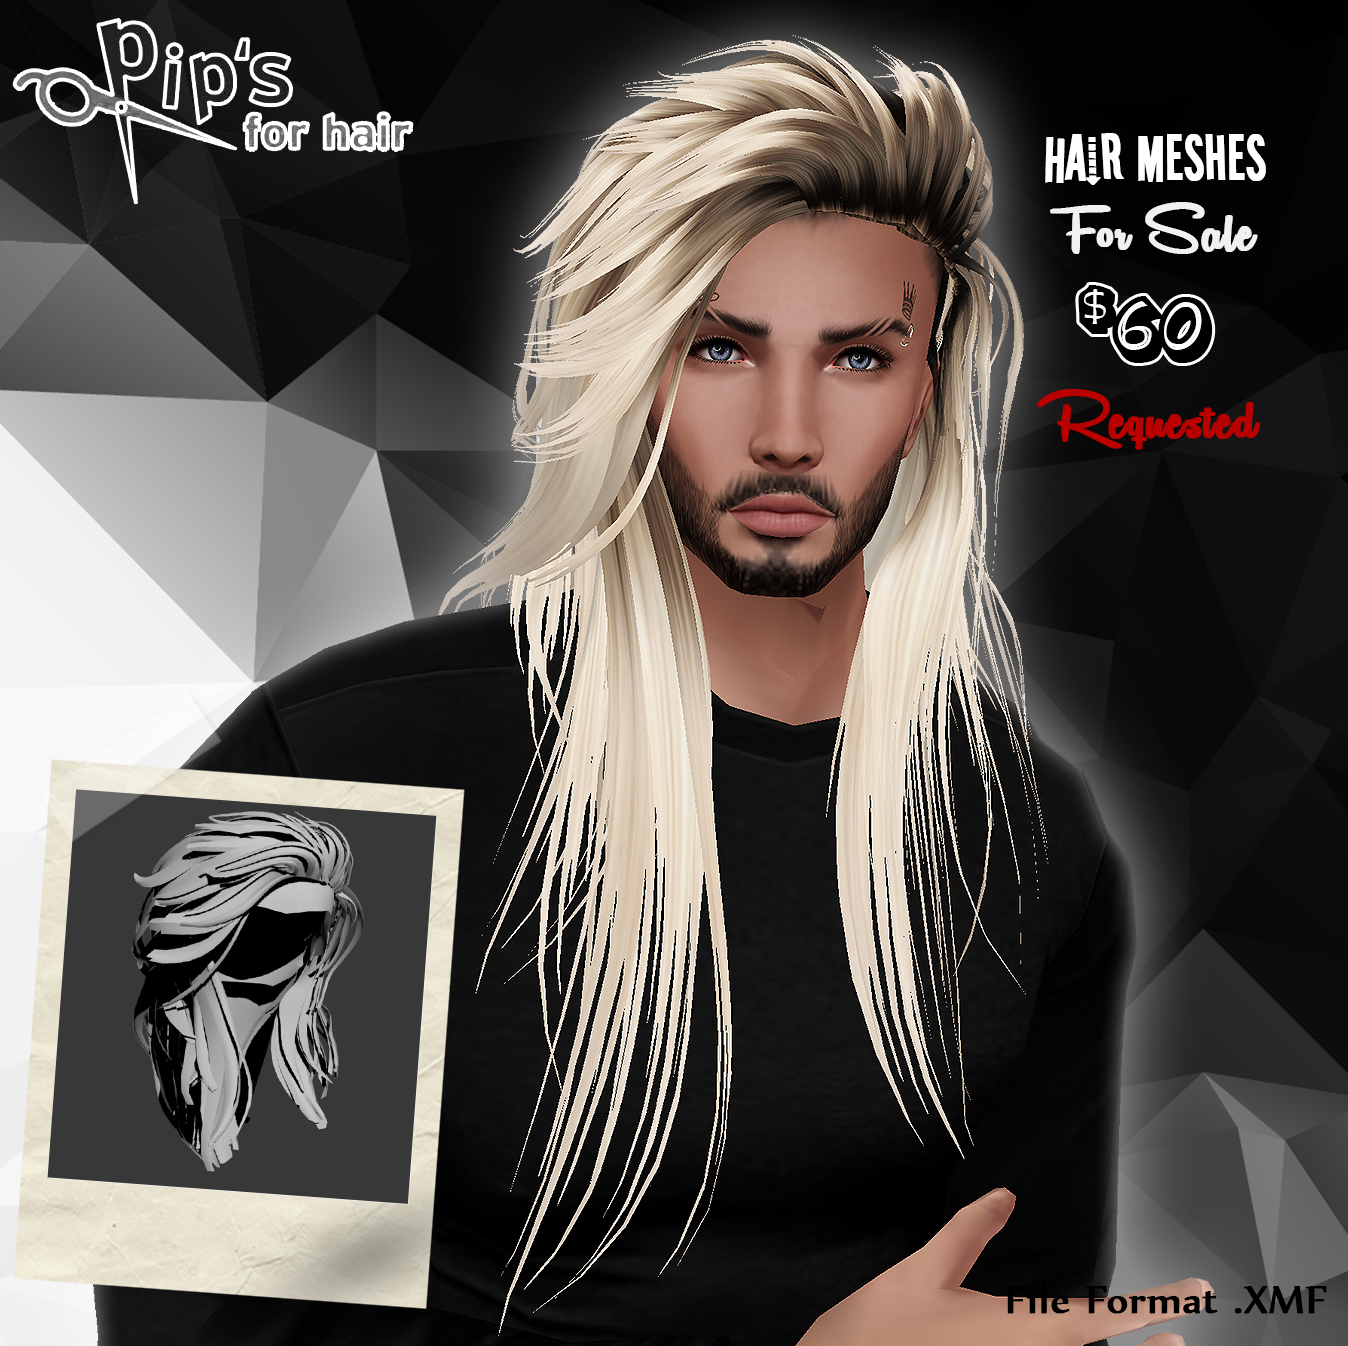 Imvu Hairstyles Images - Reverse Search